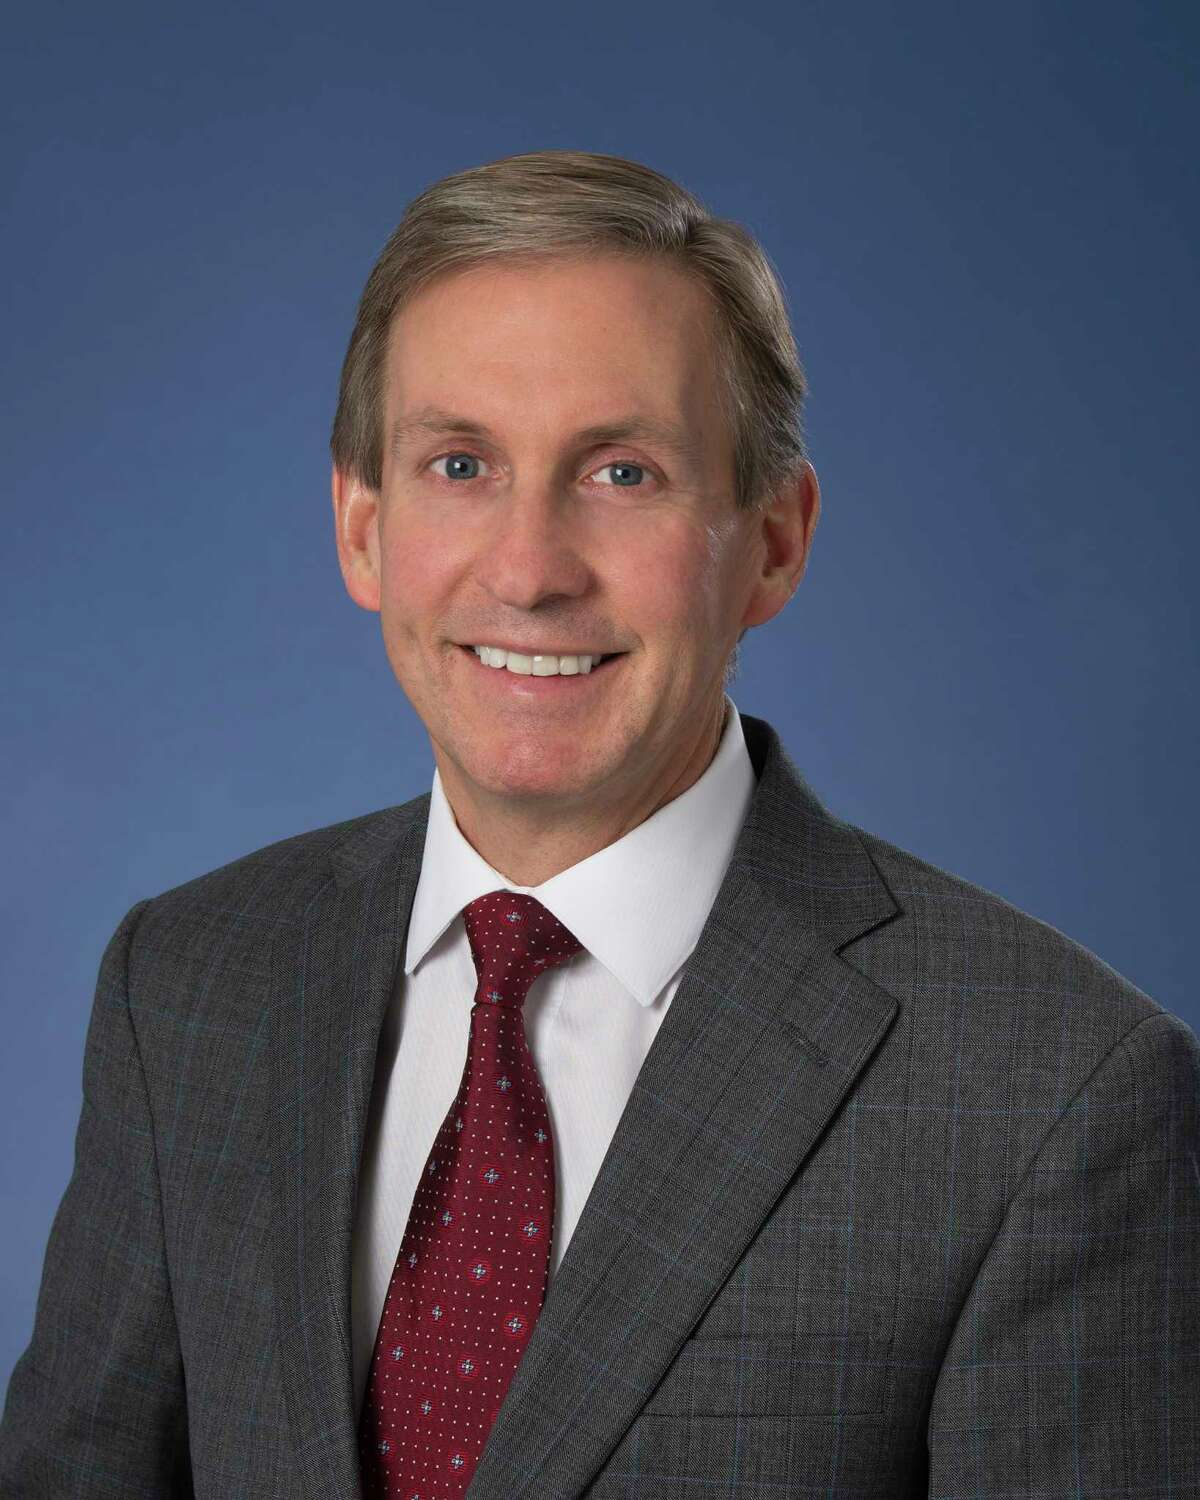 Peter Pisters will become the fifth president of MD Anderson. He currently is president and CEO of University Health Network in Toronto.